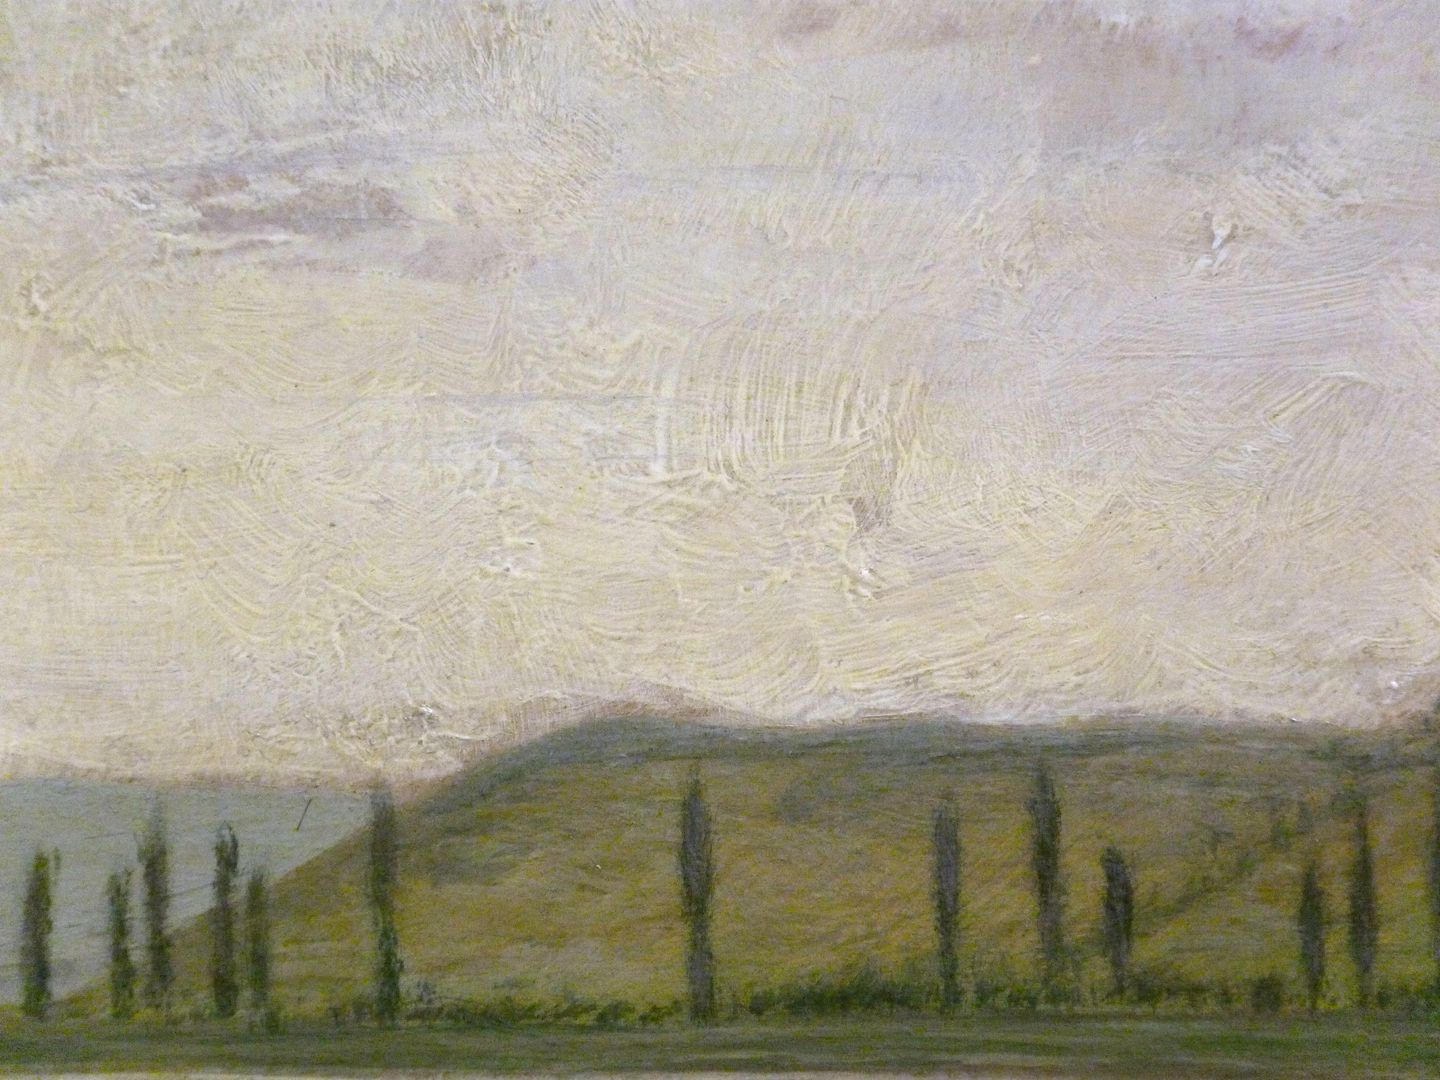 Main landscape Picture detail, centre of picture with painting structure